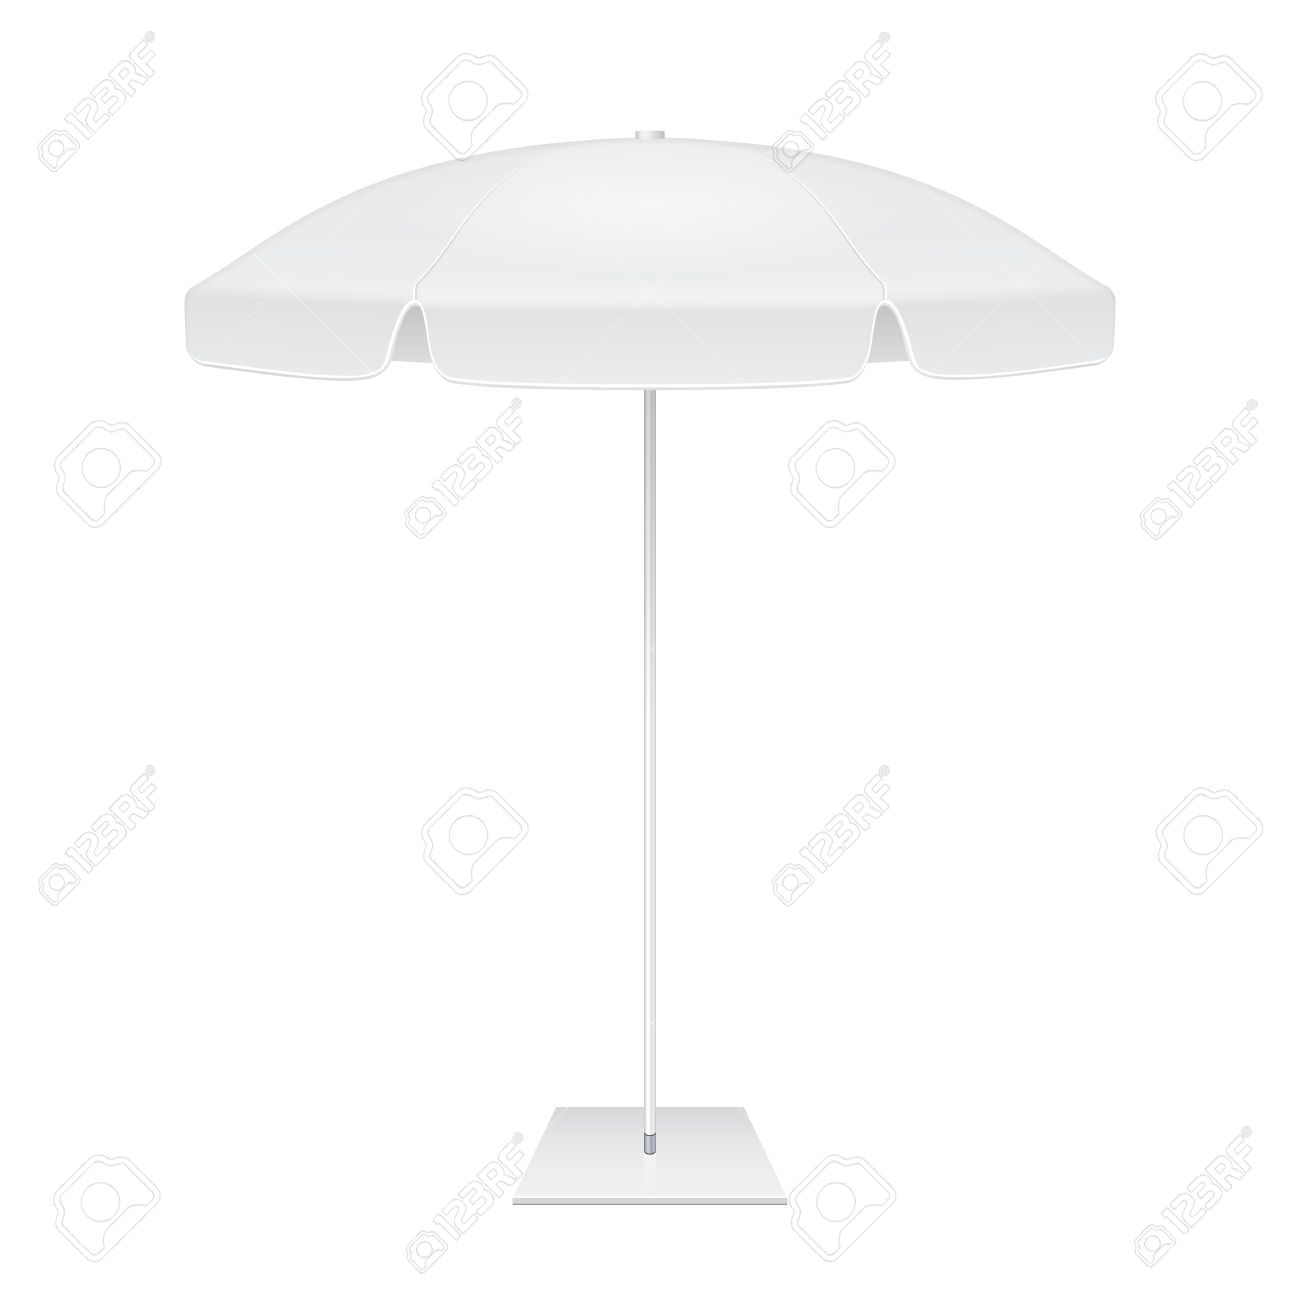 Promotional Square Advertising Outdoor Garden White Umbrella – Umbrella Template